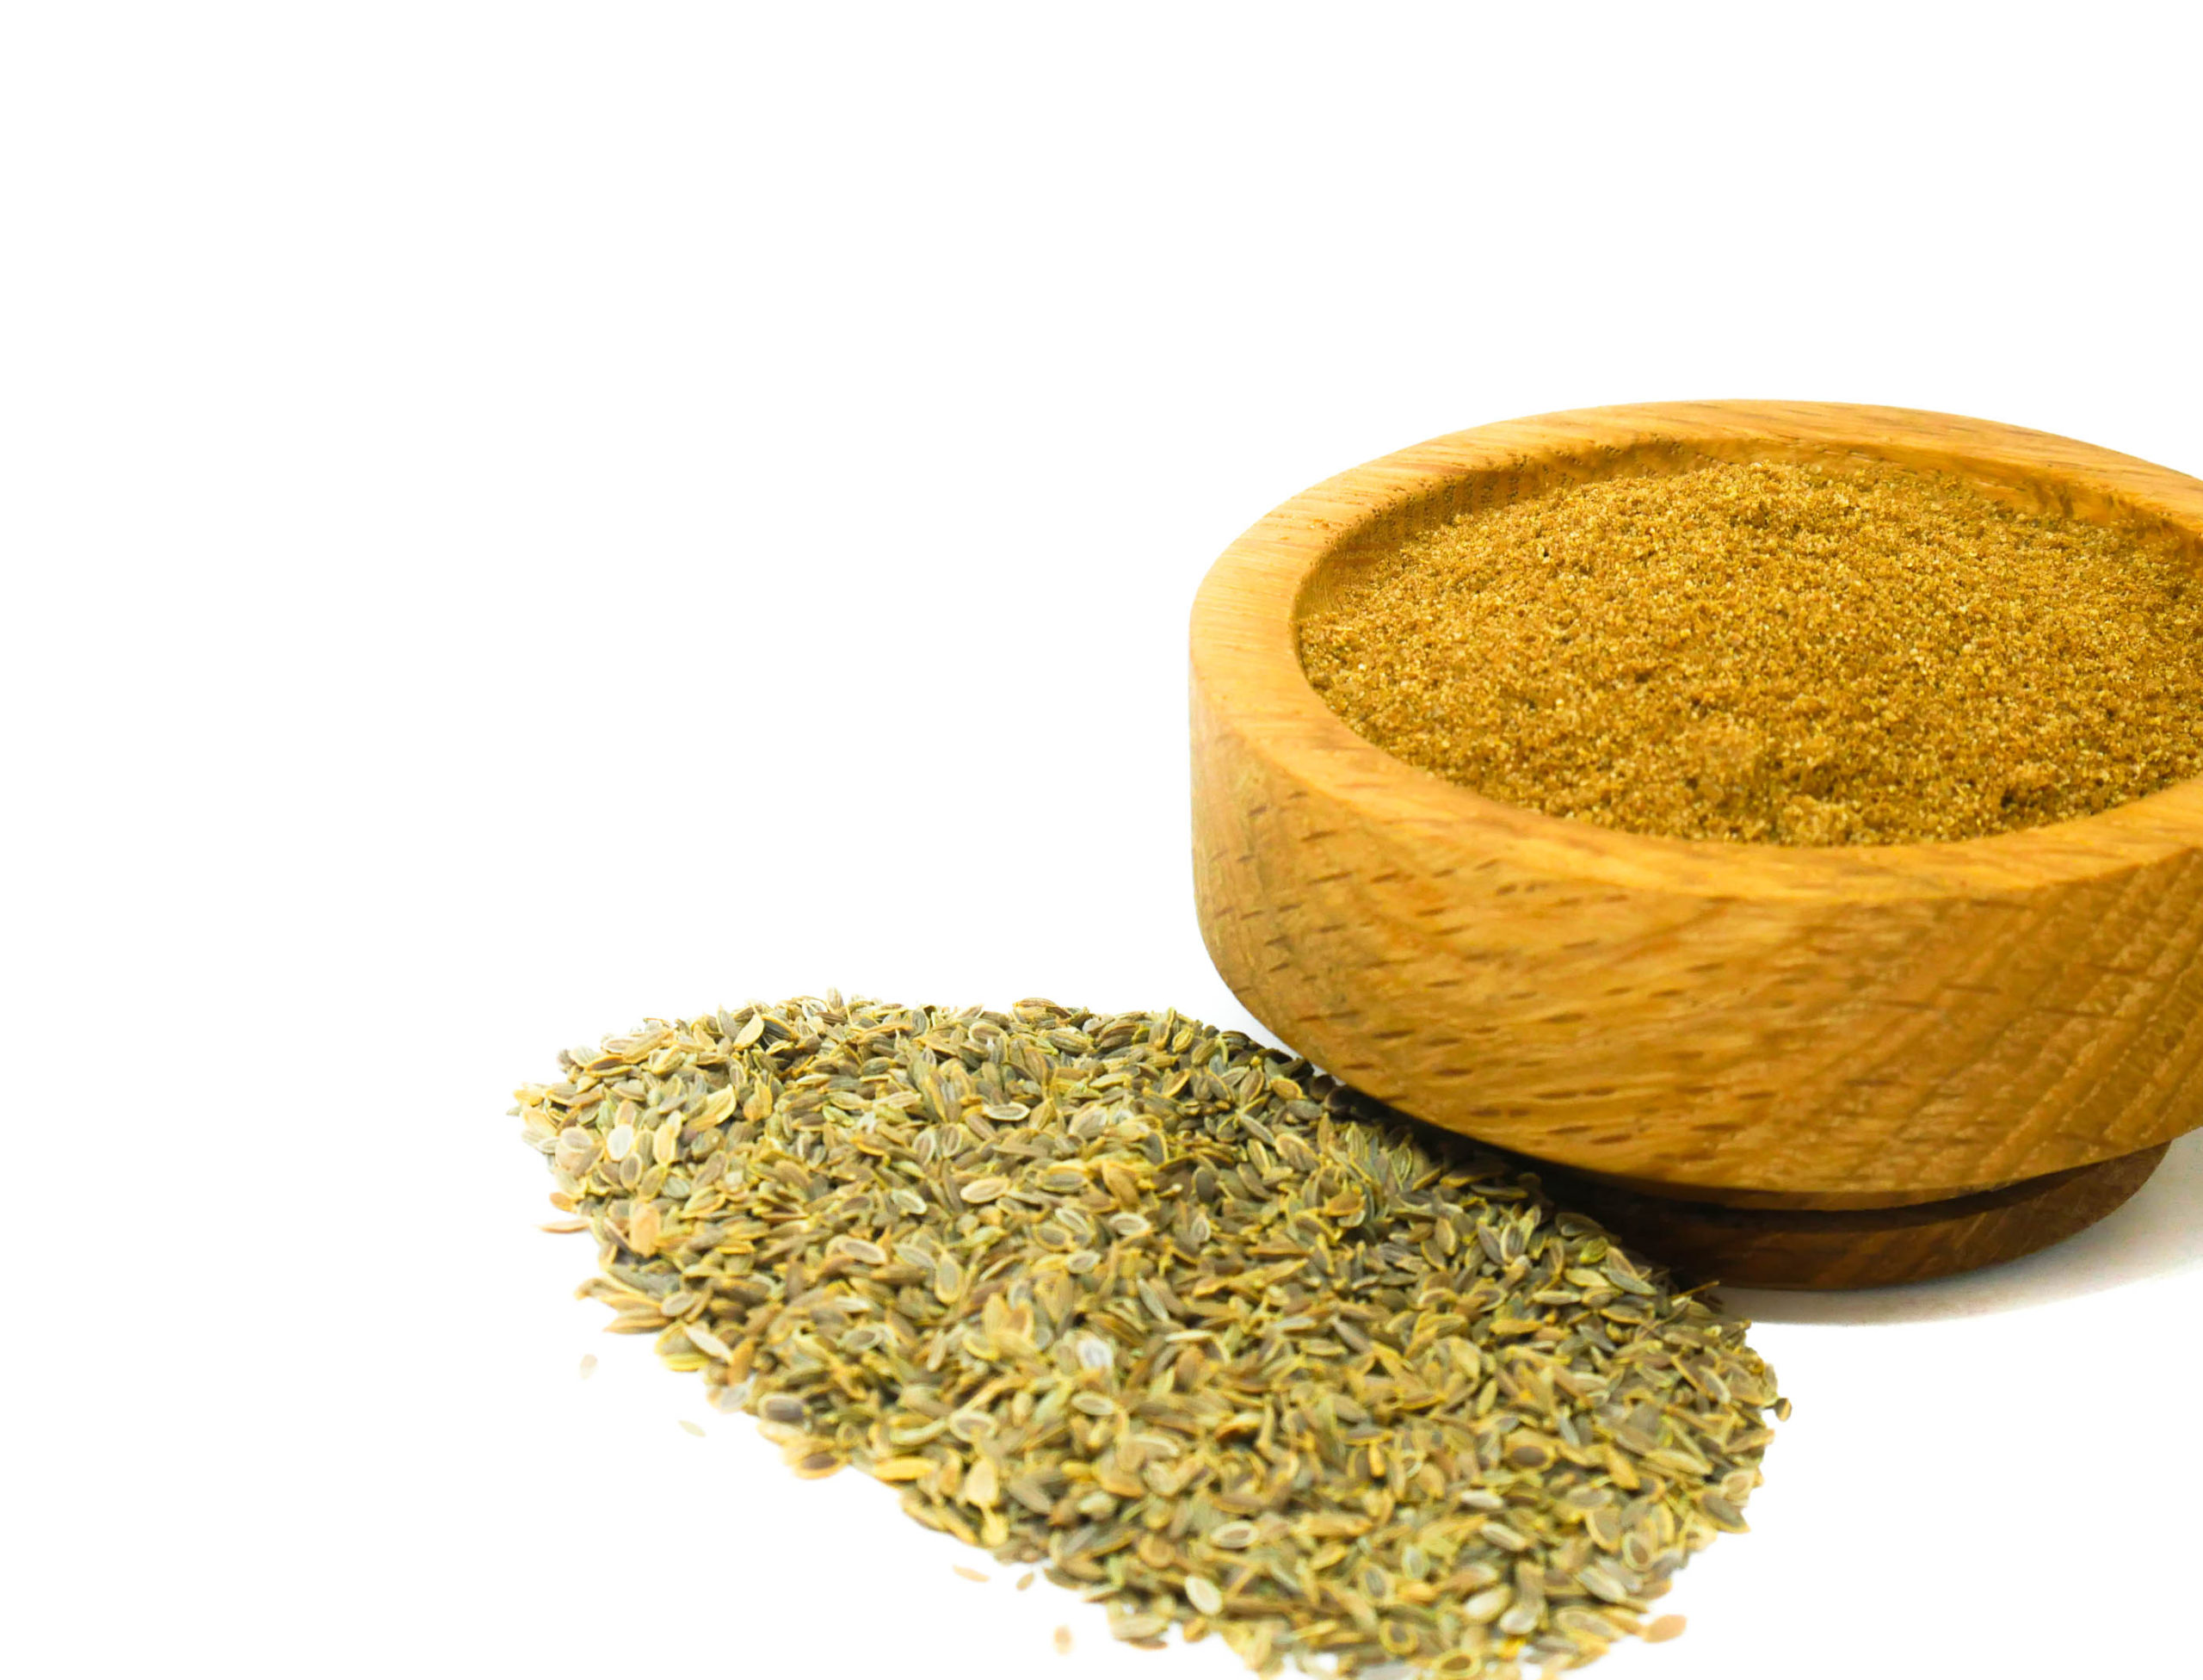 Whole and ground Dill Seed from the Natural Spot